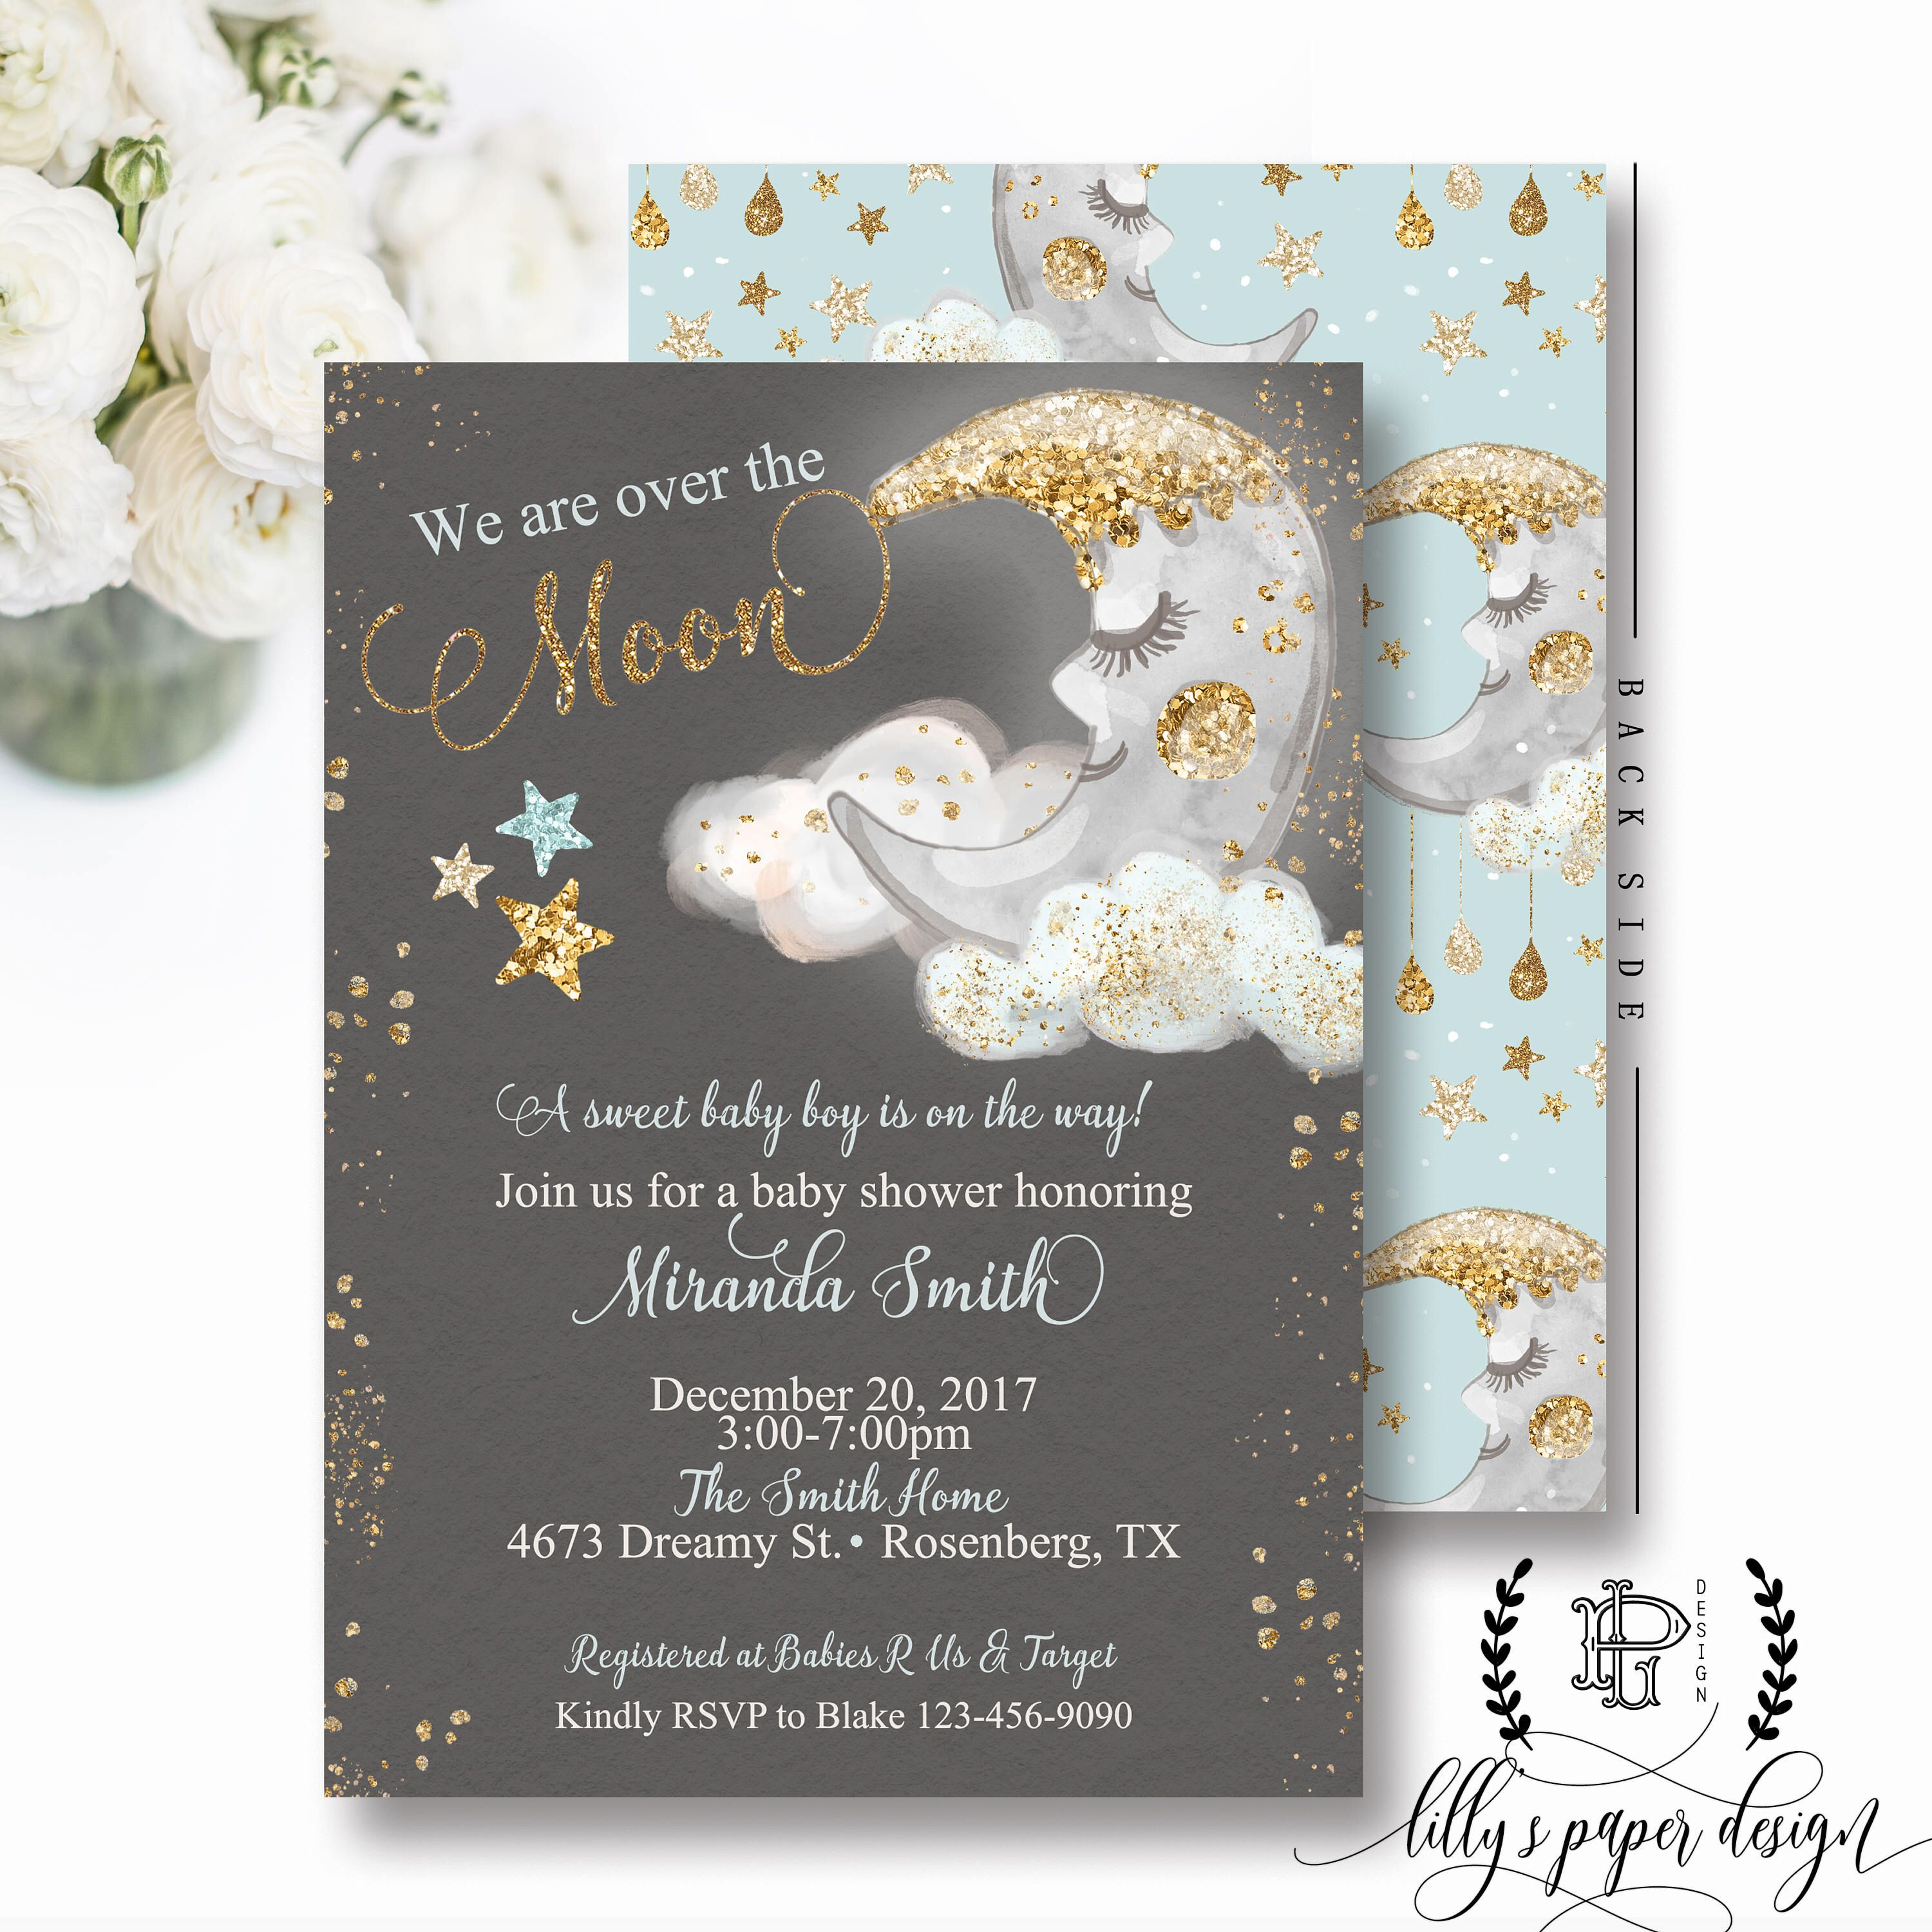 Pin By Lilly S Paper Design On Over The Moon Baby Shower Theme In